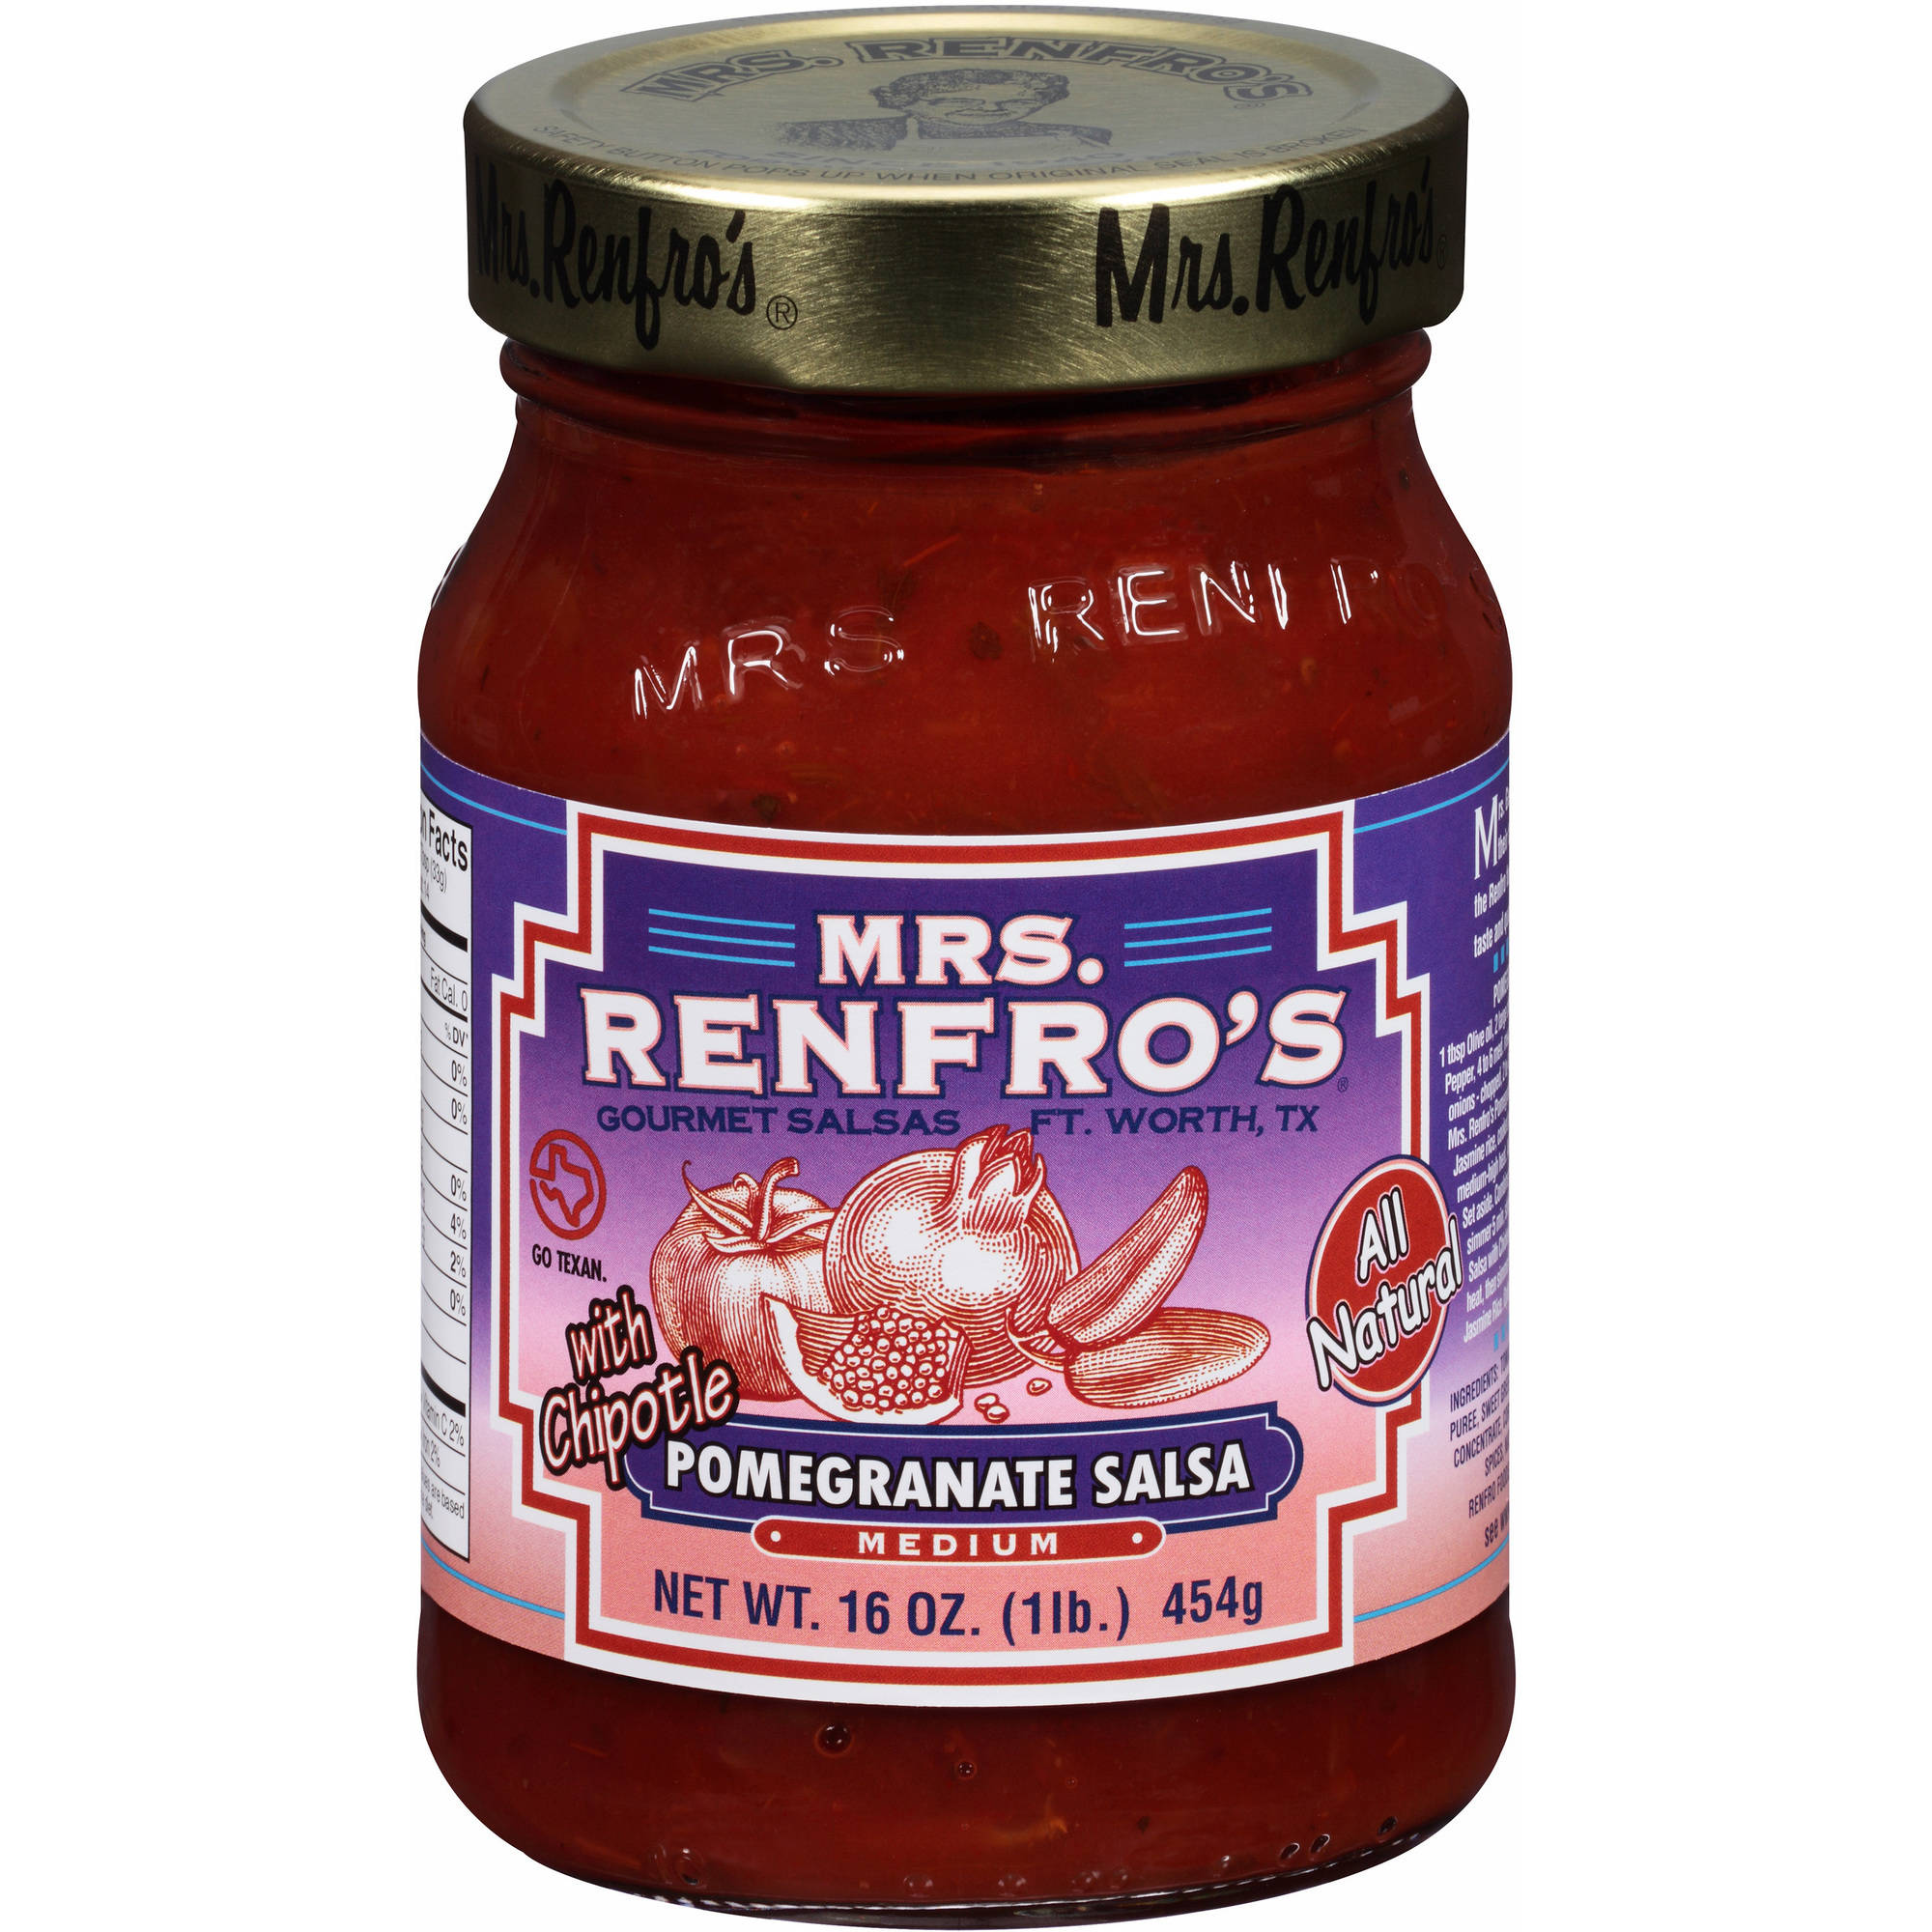 Mrs. Renfro's Gourmet Medium Pomegranate Salsa with Chipotle, 16 oz